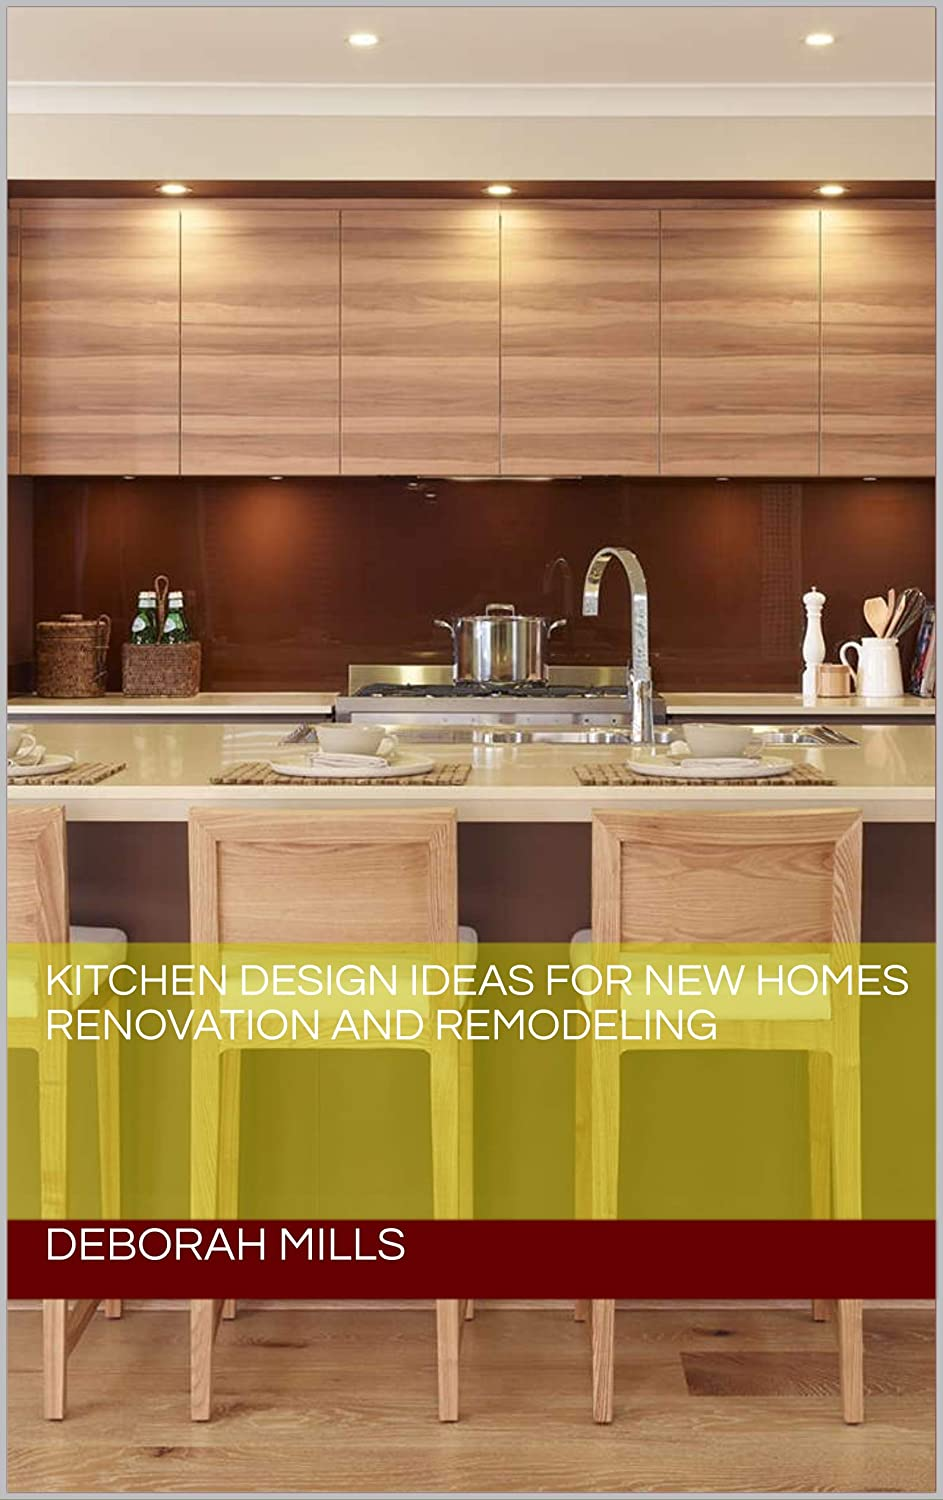 Kitchen Design Ideas for New Homes Renovation and Remodeling ... on ideas to clean kitchen, ideas basement kitchen, ideas to design a kitchen, ideas to remodel kitchen, ideas to paint kitchen,